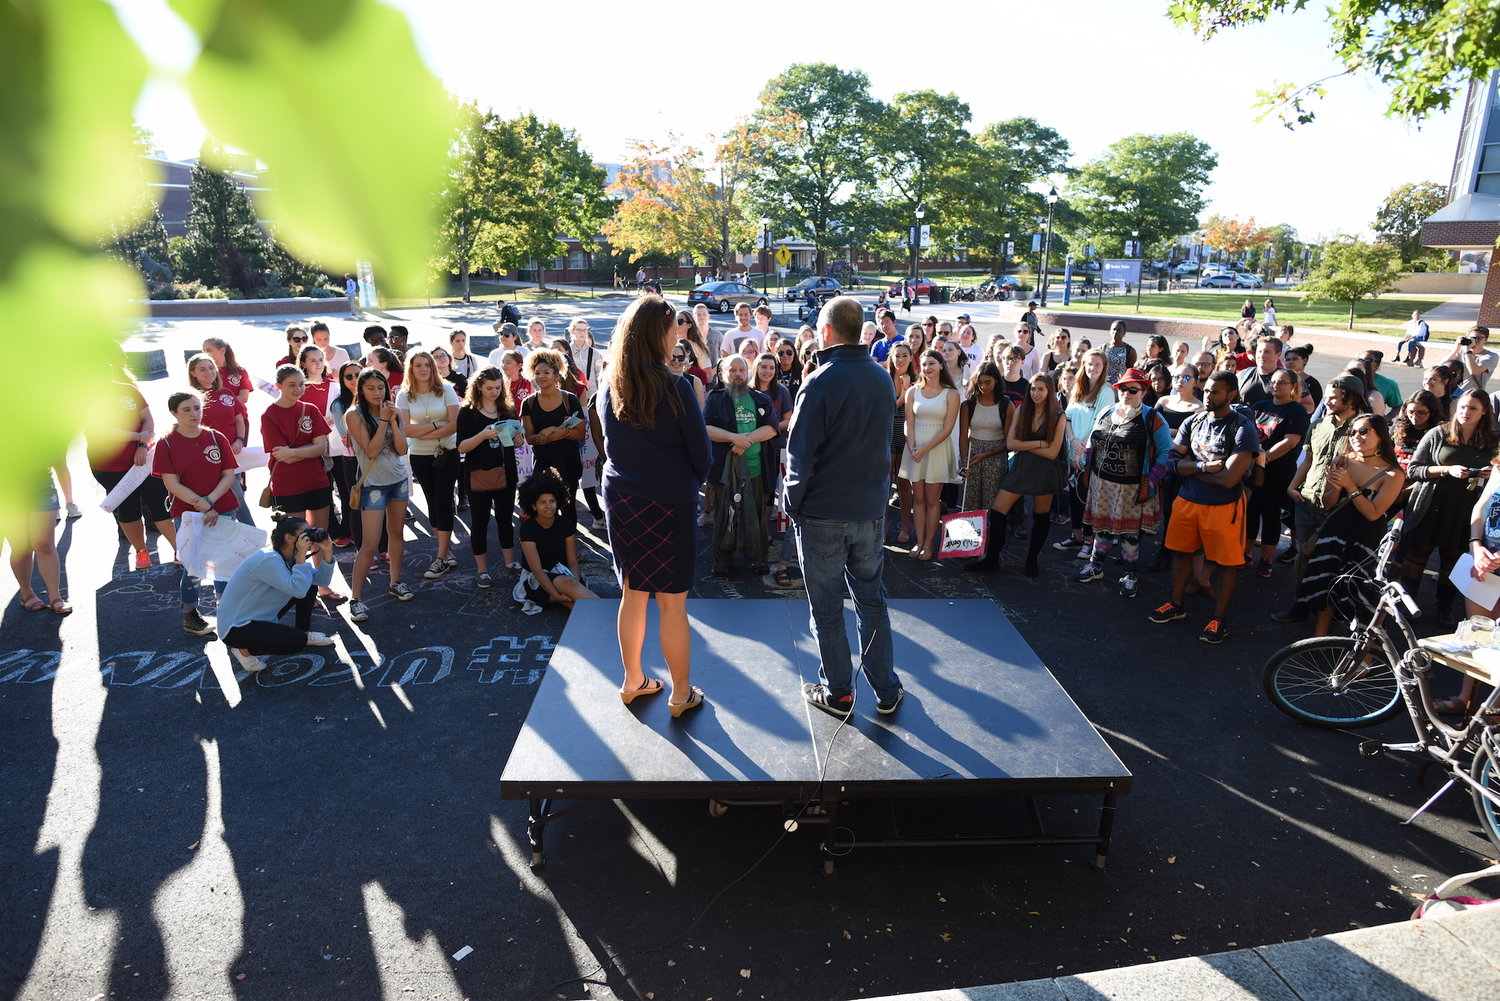 The annual UConn Slutwalk: A March to End Victim Blaming was held on Friday, Oct. 7, 2016.State Representative Gregg Haddad and Connecticut Senator Mae Flexer attended and spoke to participants after the march about what they've done legislatively to protect sexual assault victims. (Zhelun Lang/The Daily Campus)